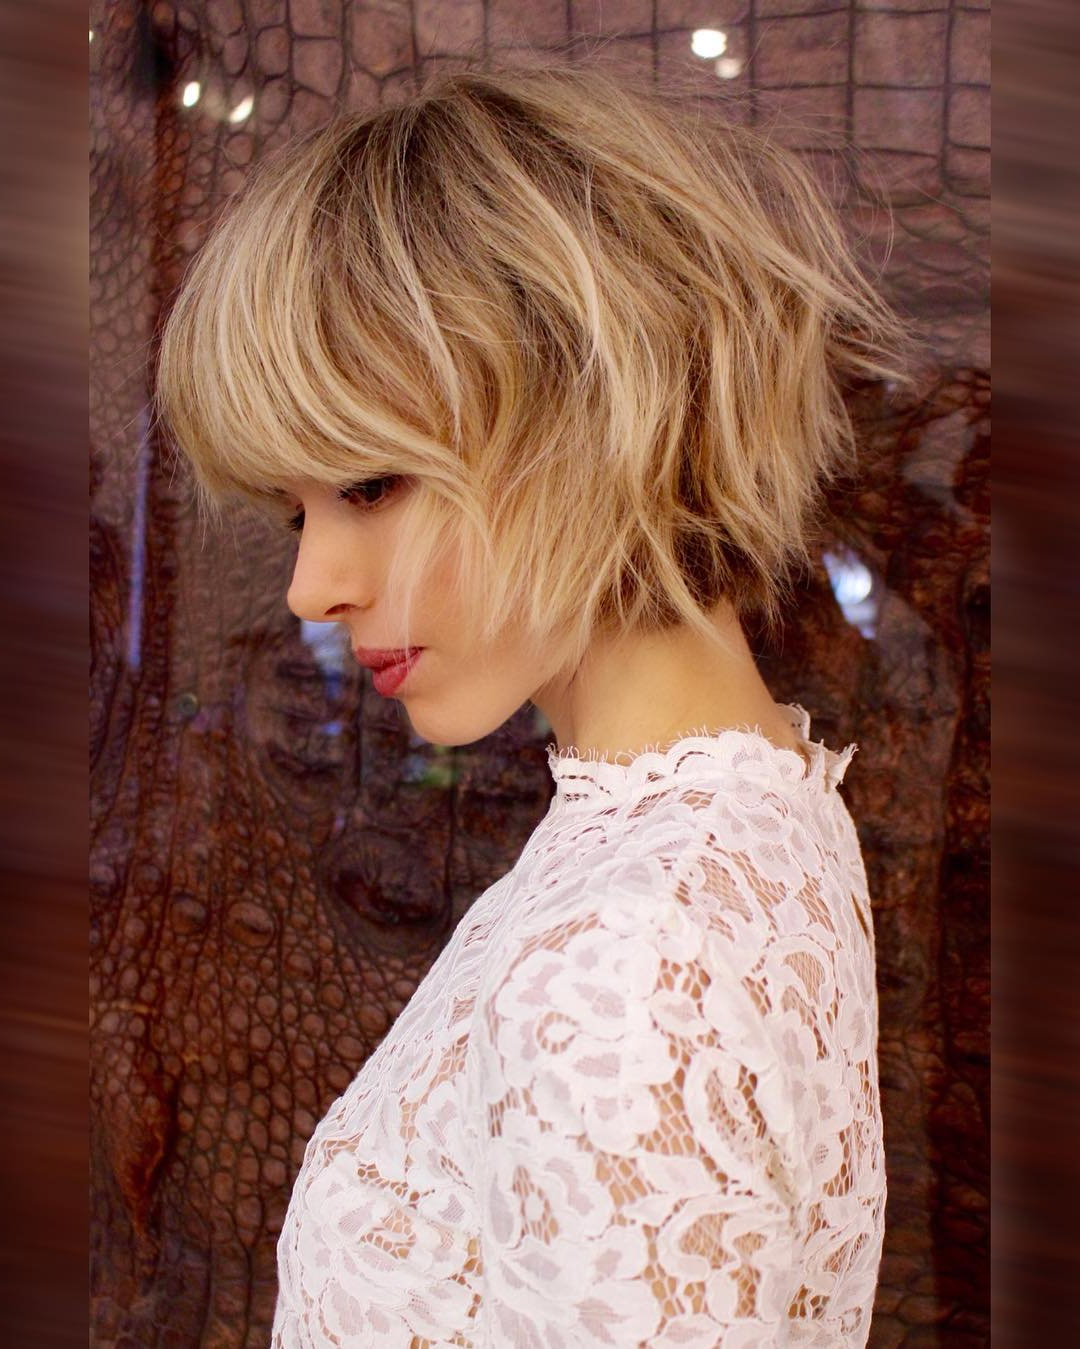 10 Short Shag Hairstyles For Women 2020 Intended For Jaw Length Shaggy Walnut Brown Bob Hairstyles (Gallery 13 of 20)